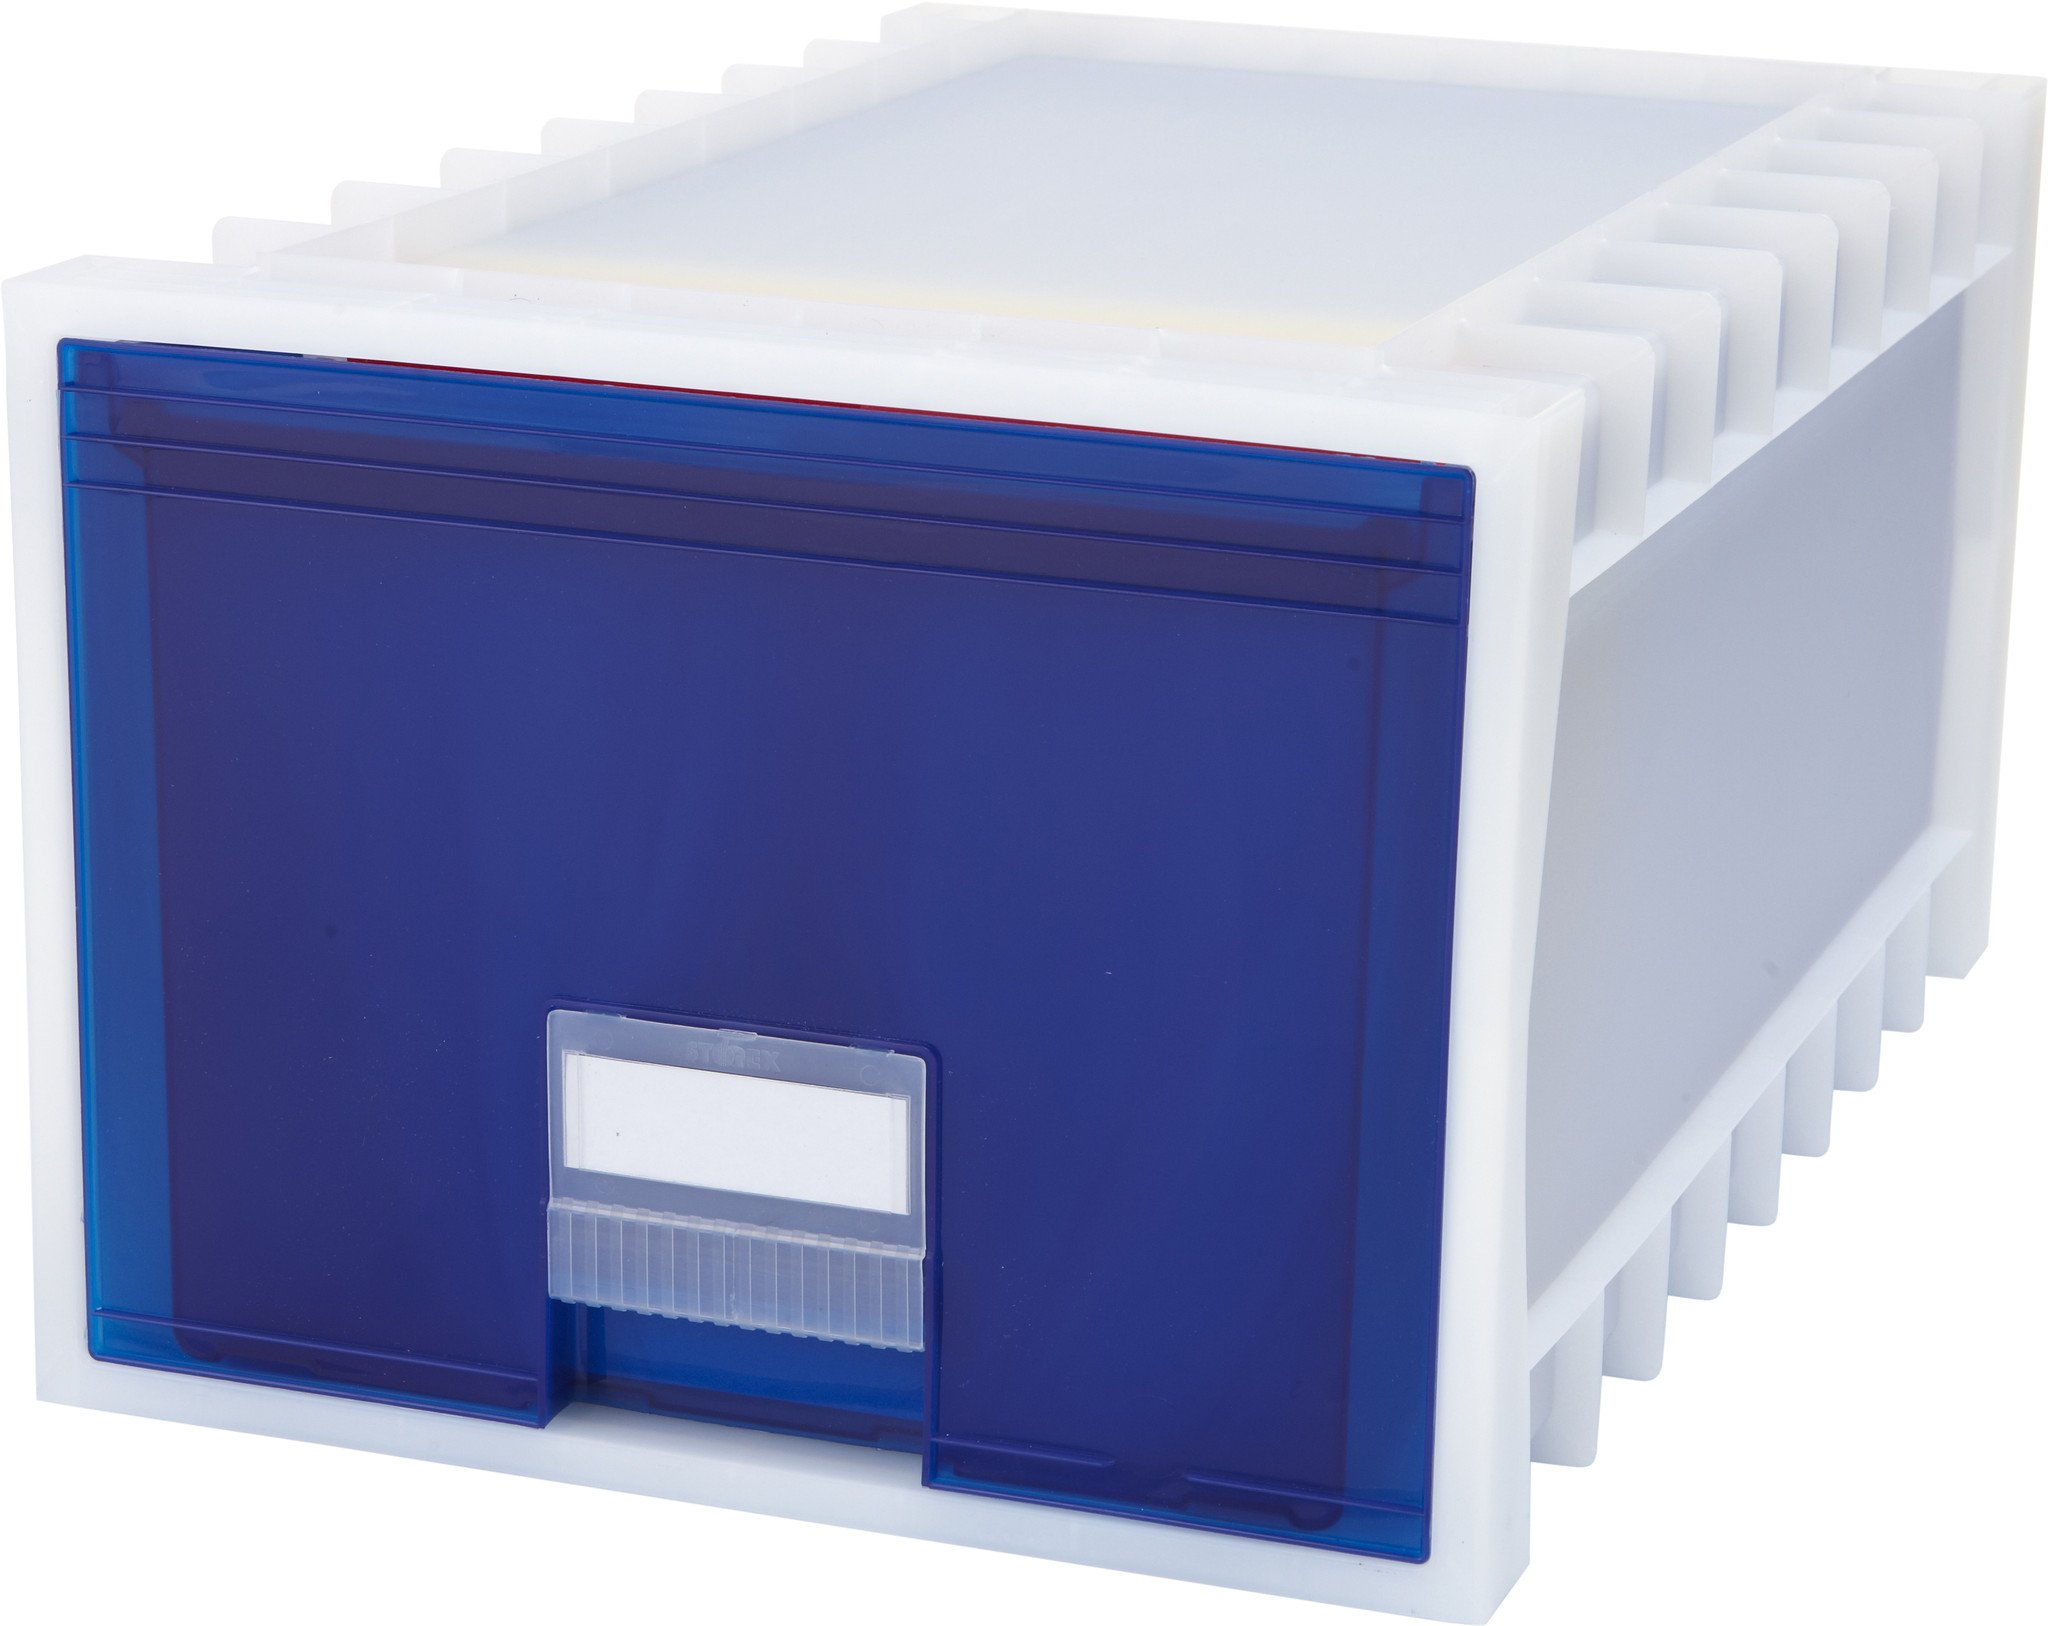 Storex Plastic Archive Storage Box Sweetdeal